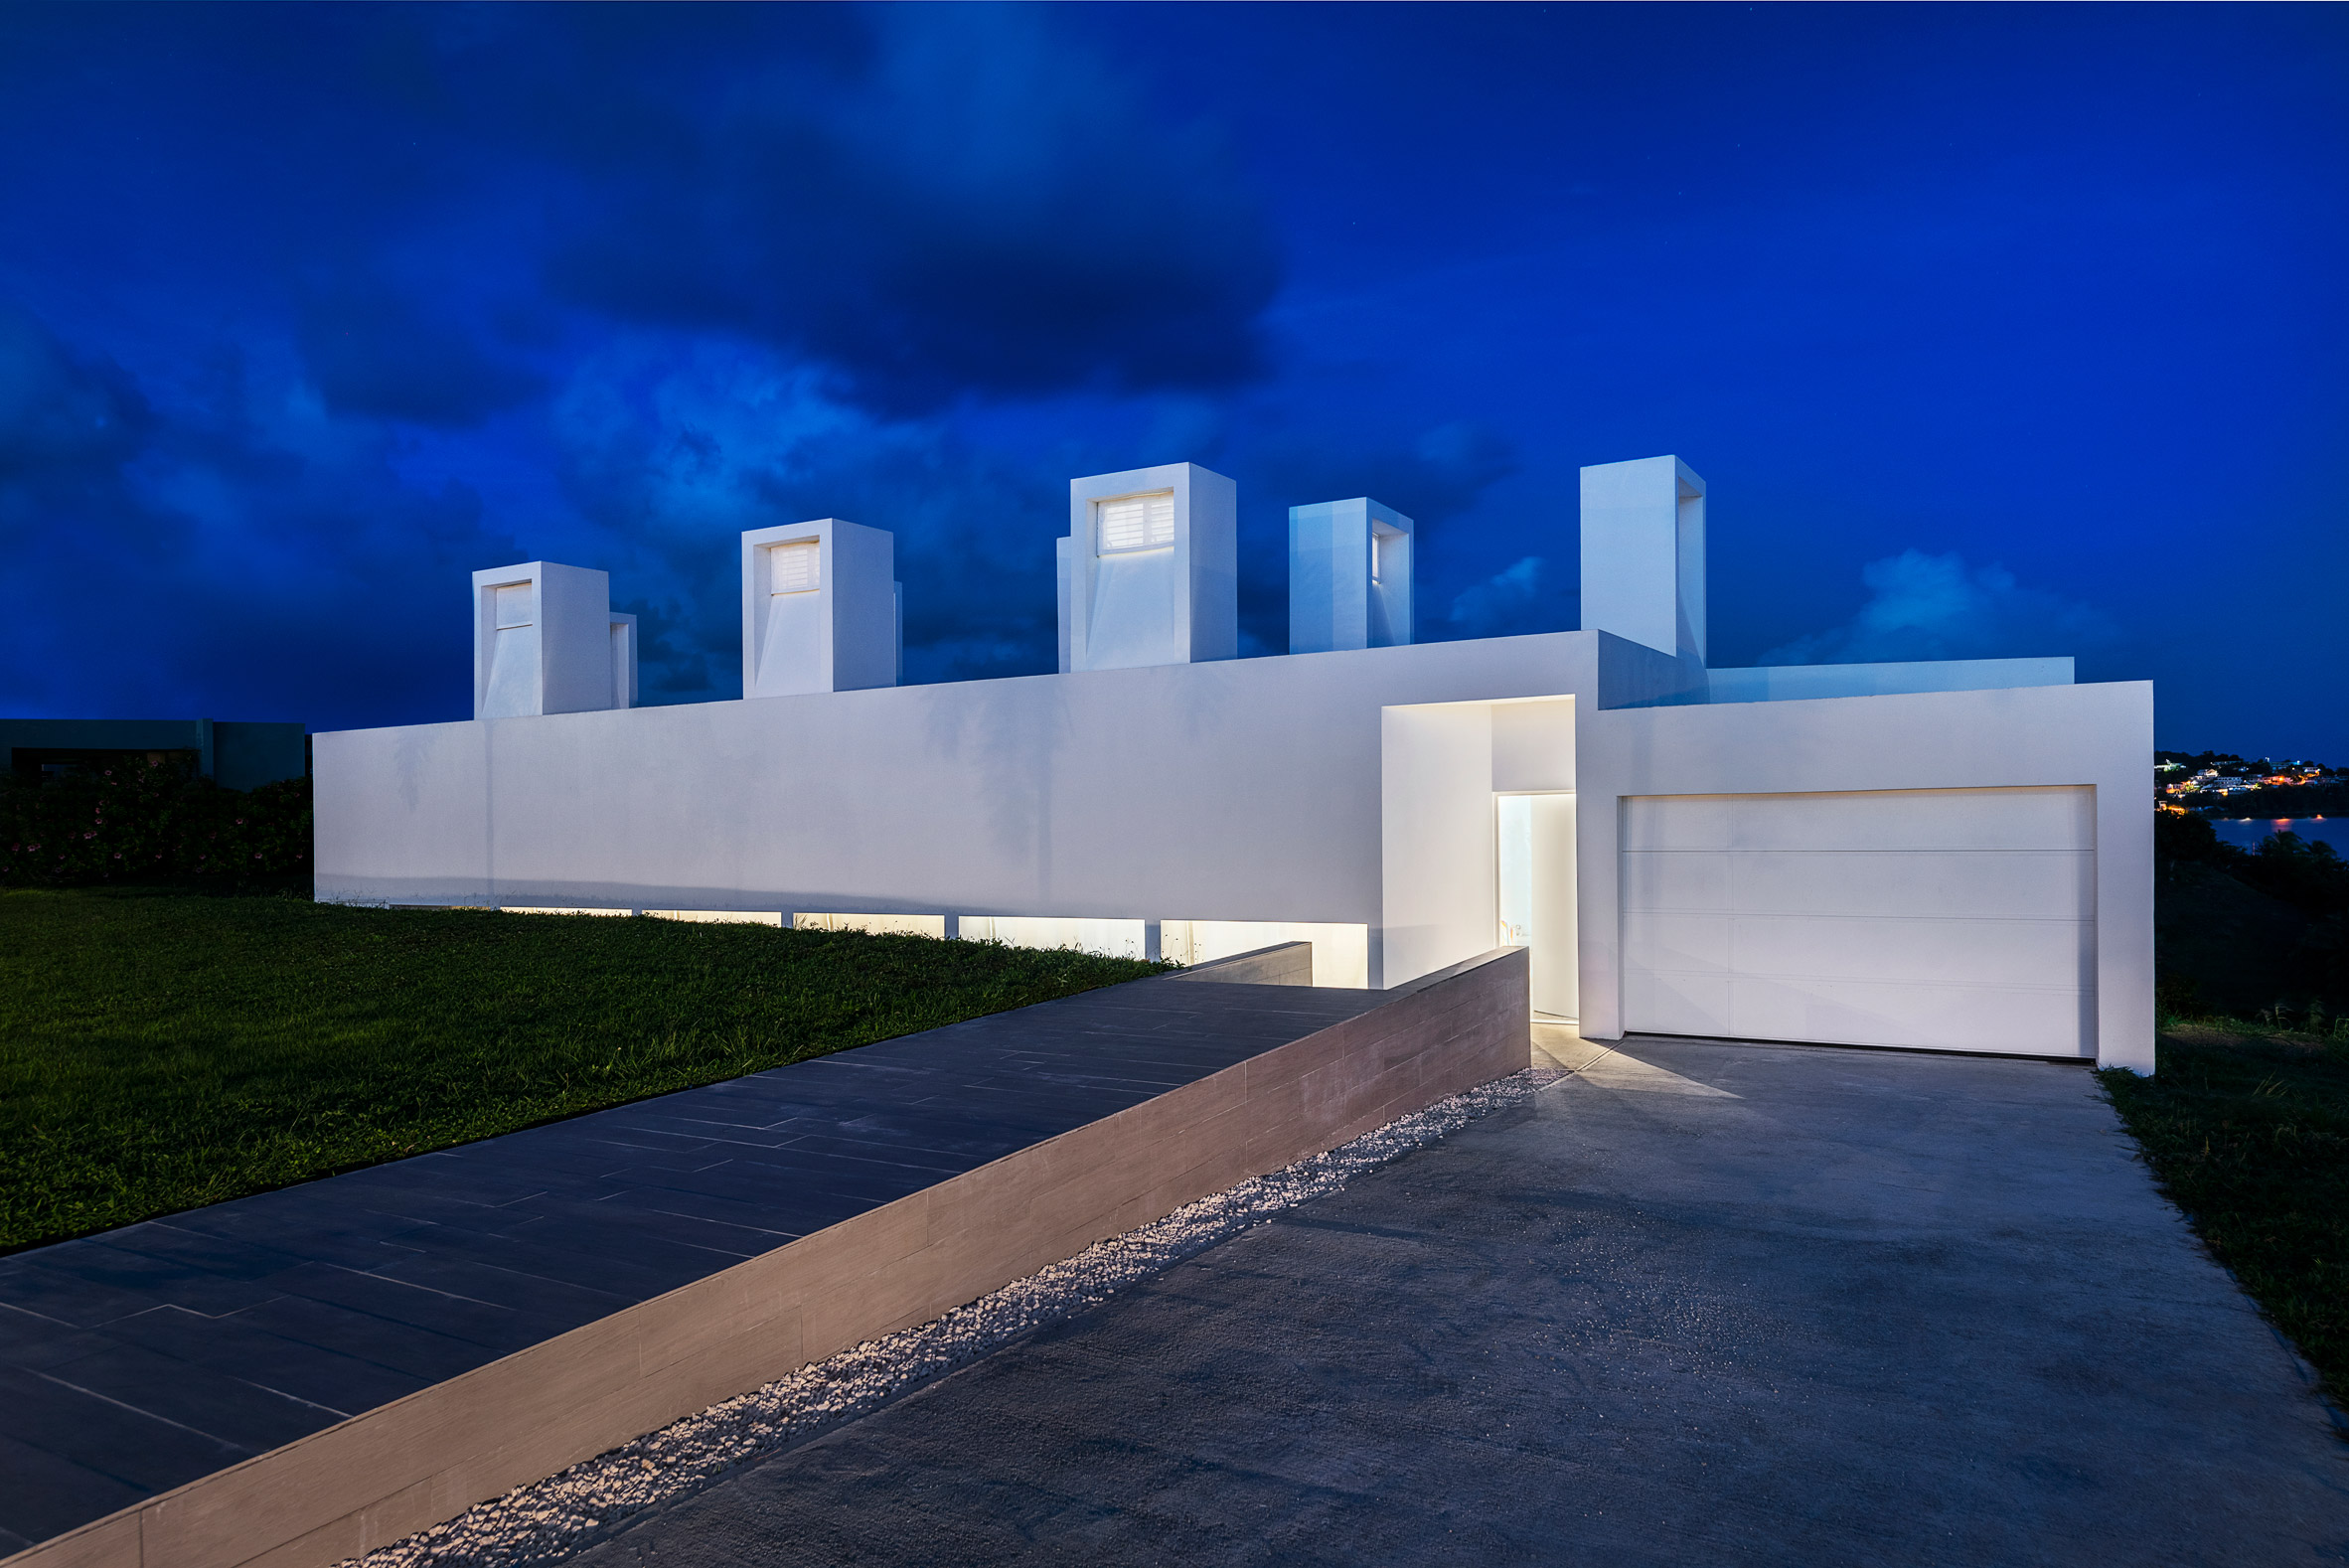 Nighttime exterior of concrete Casa Flores by Fuster + Architects